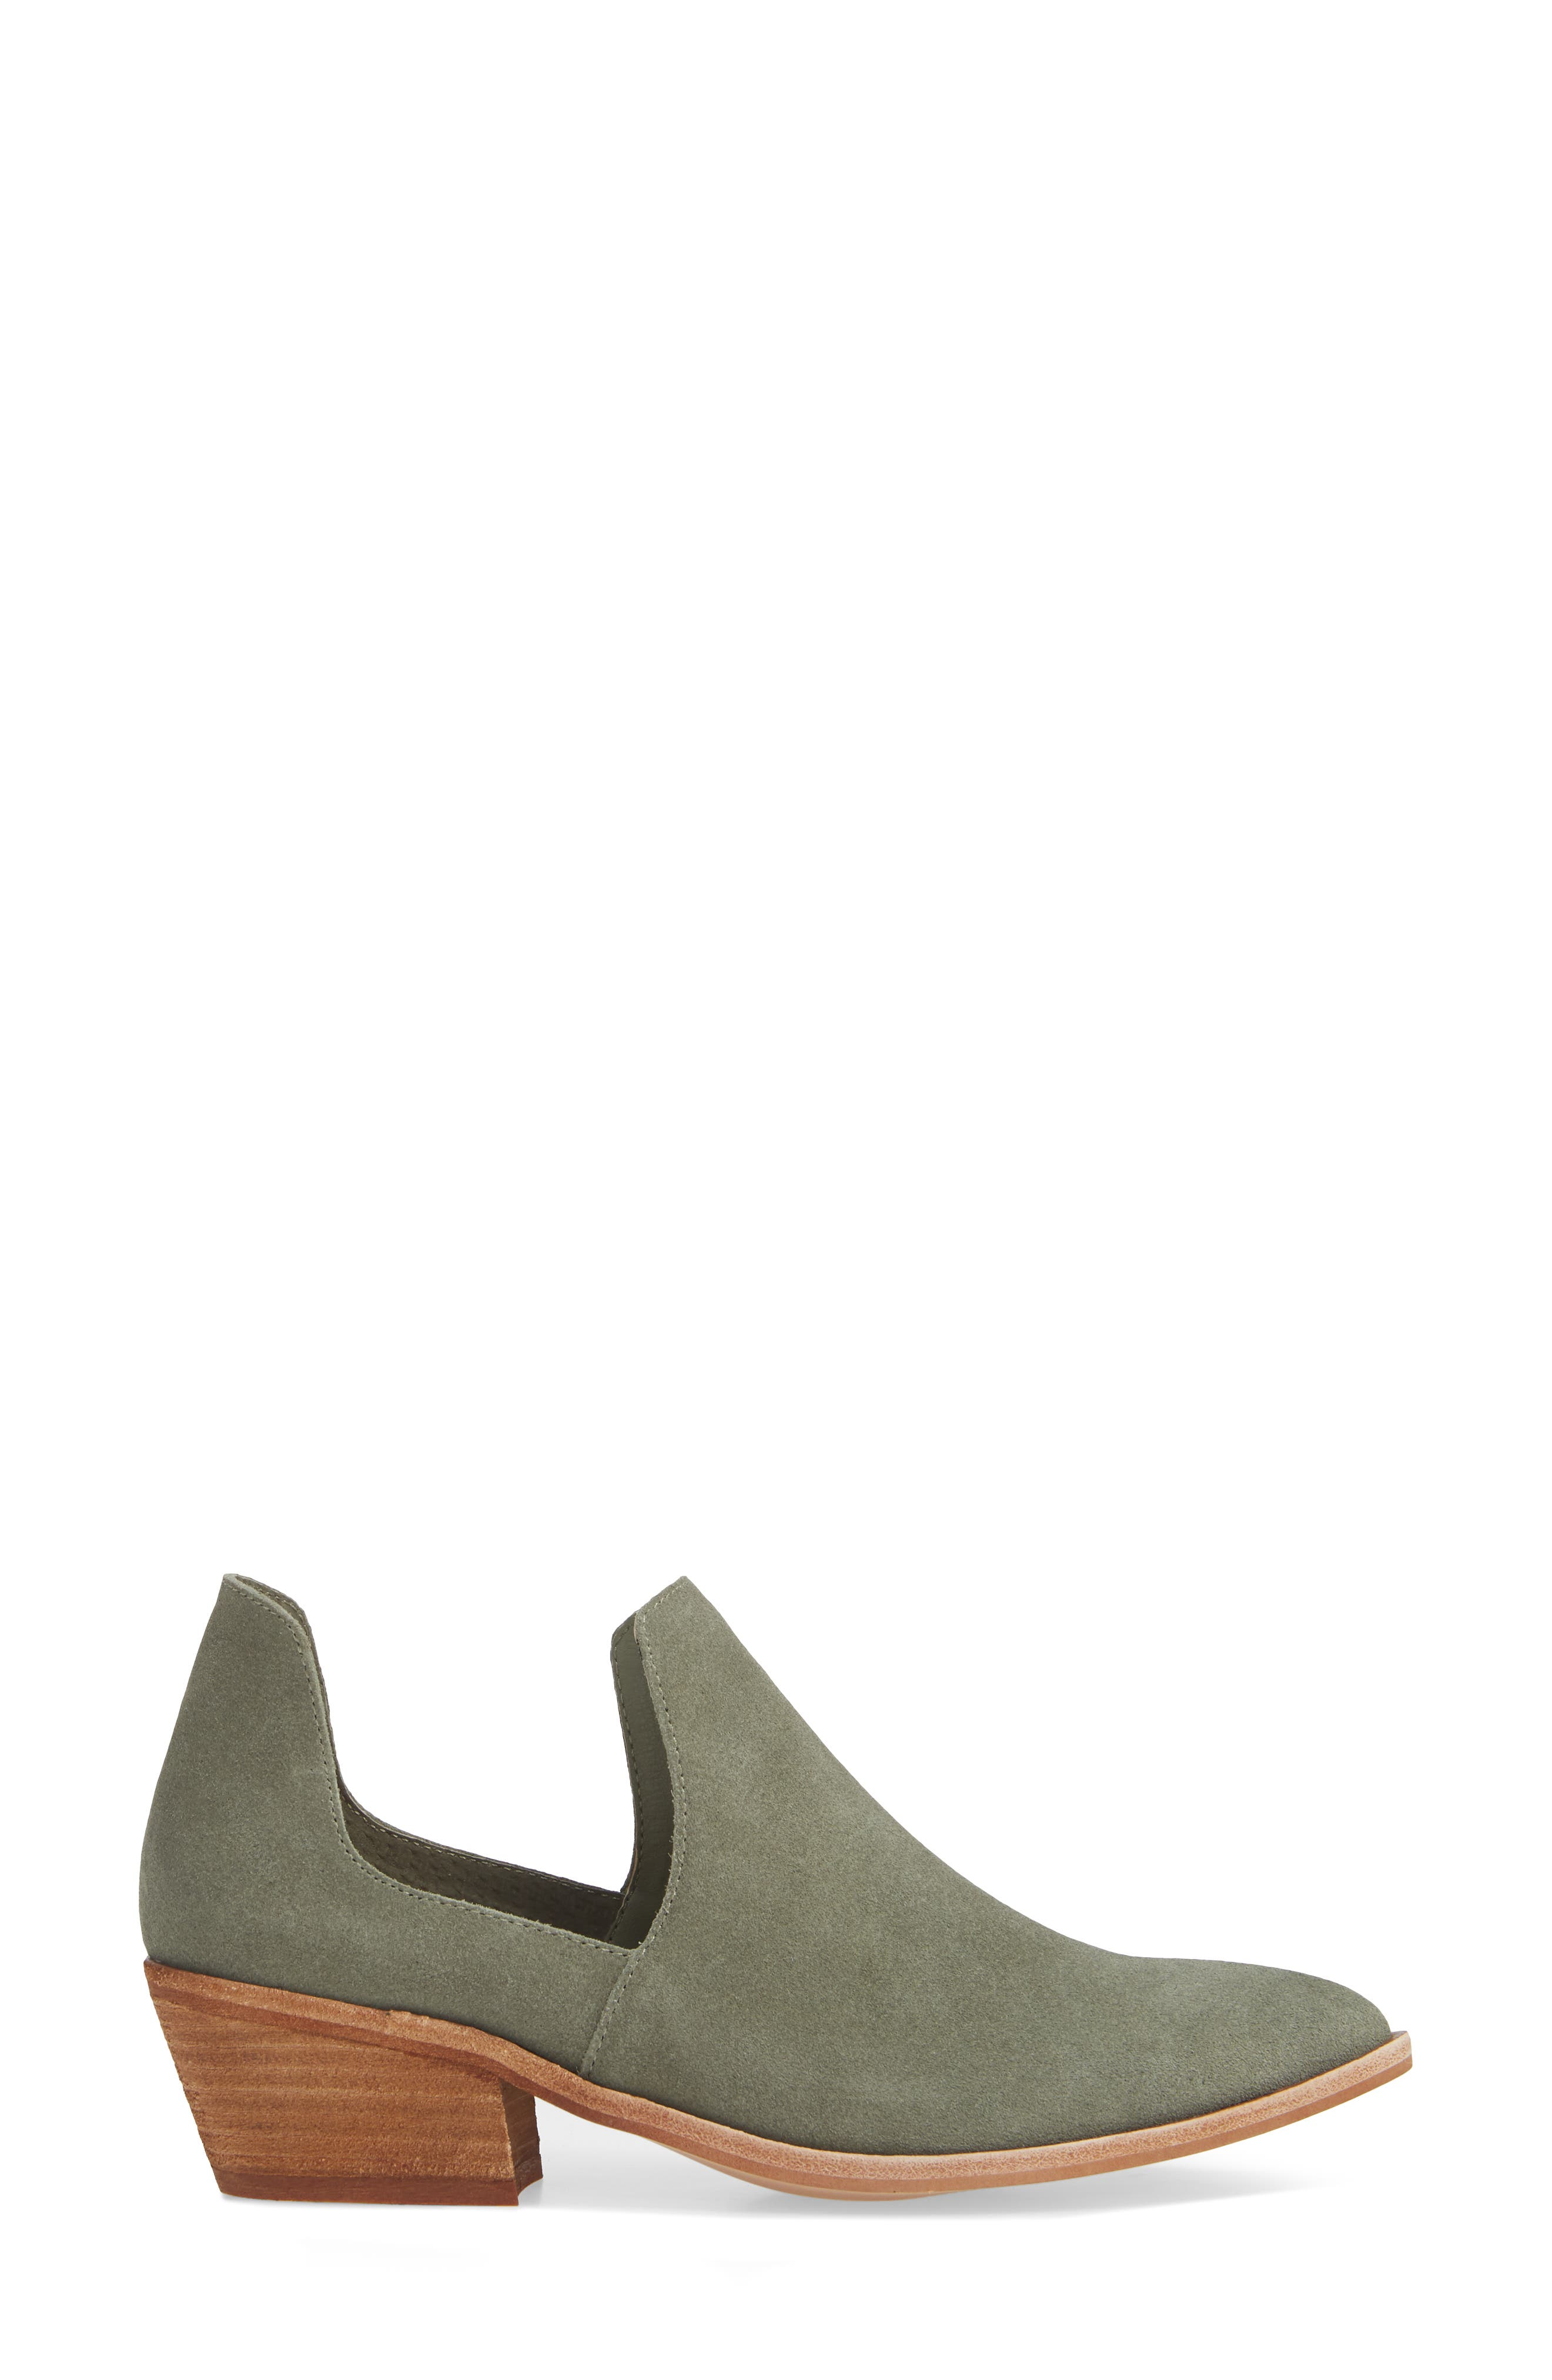 Focus Open Sided Bootie,                             Alternate thumbnail 3, color,                             OLIVE SUEDE